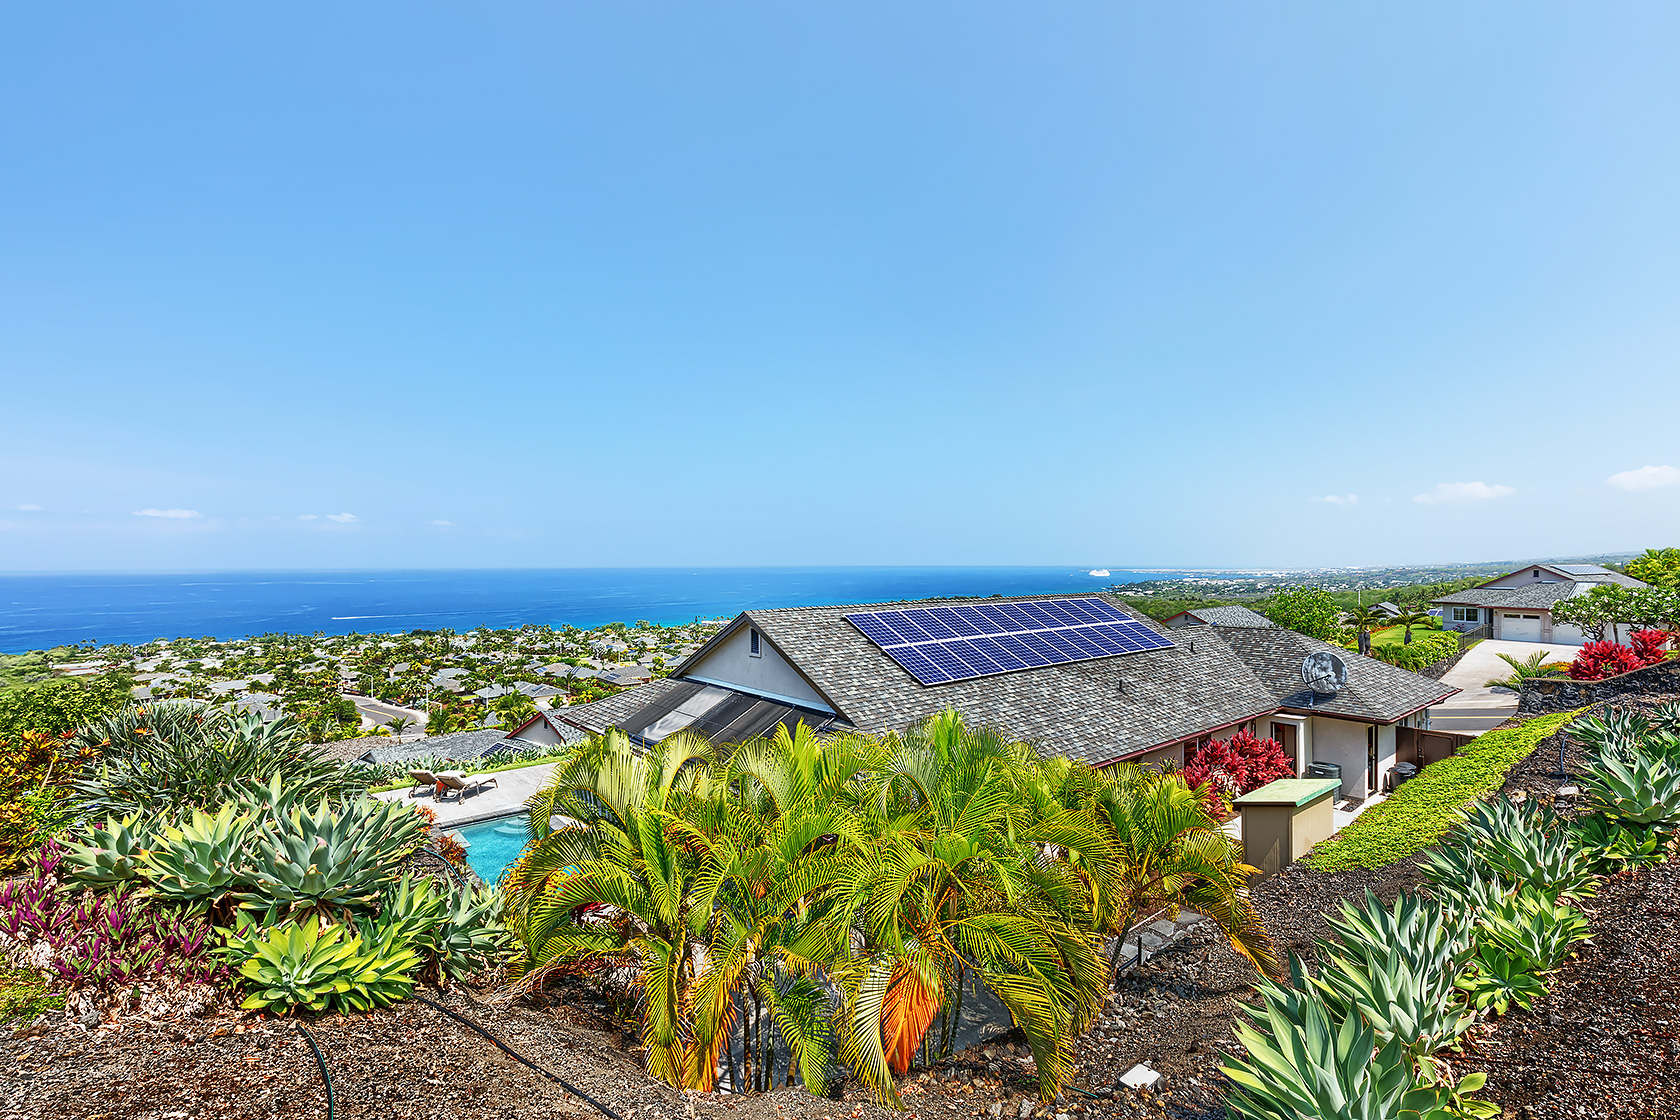 Kona Real Estate Photographer